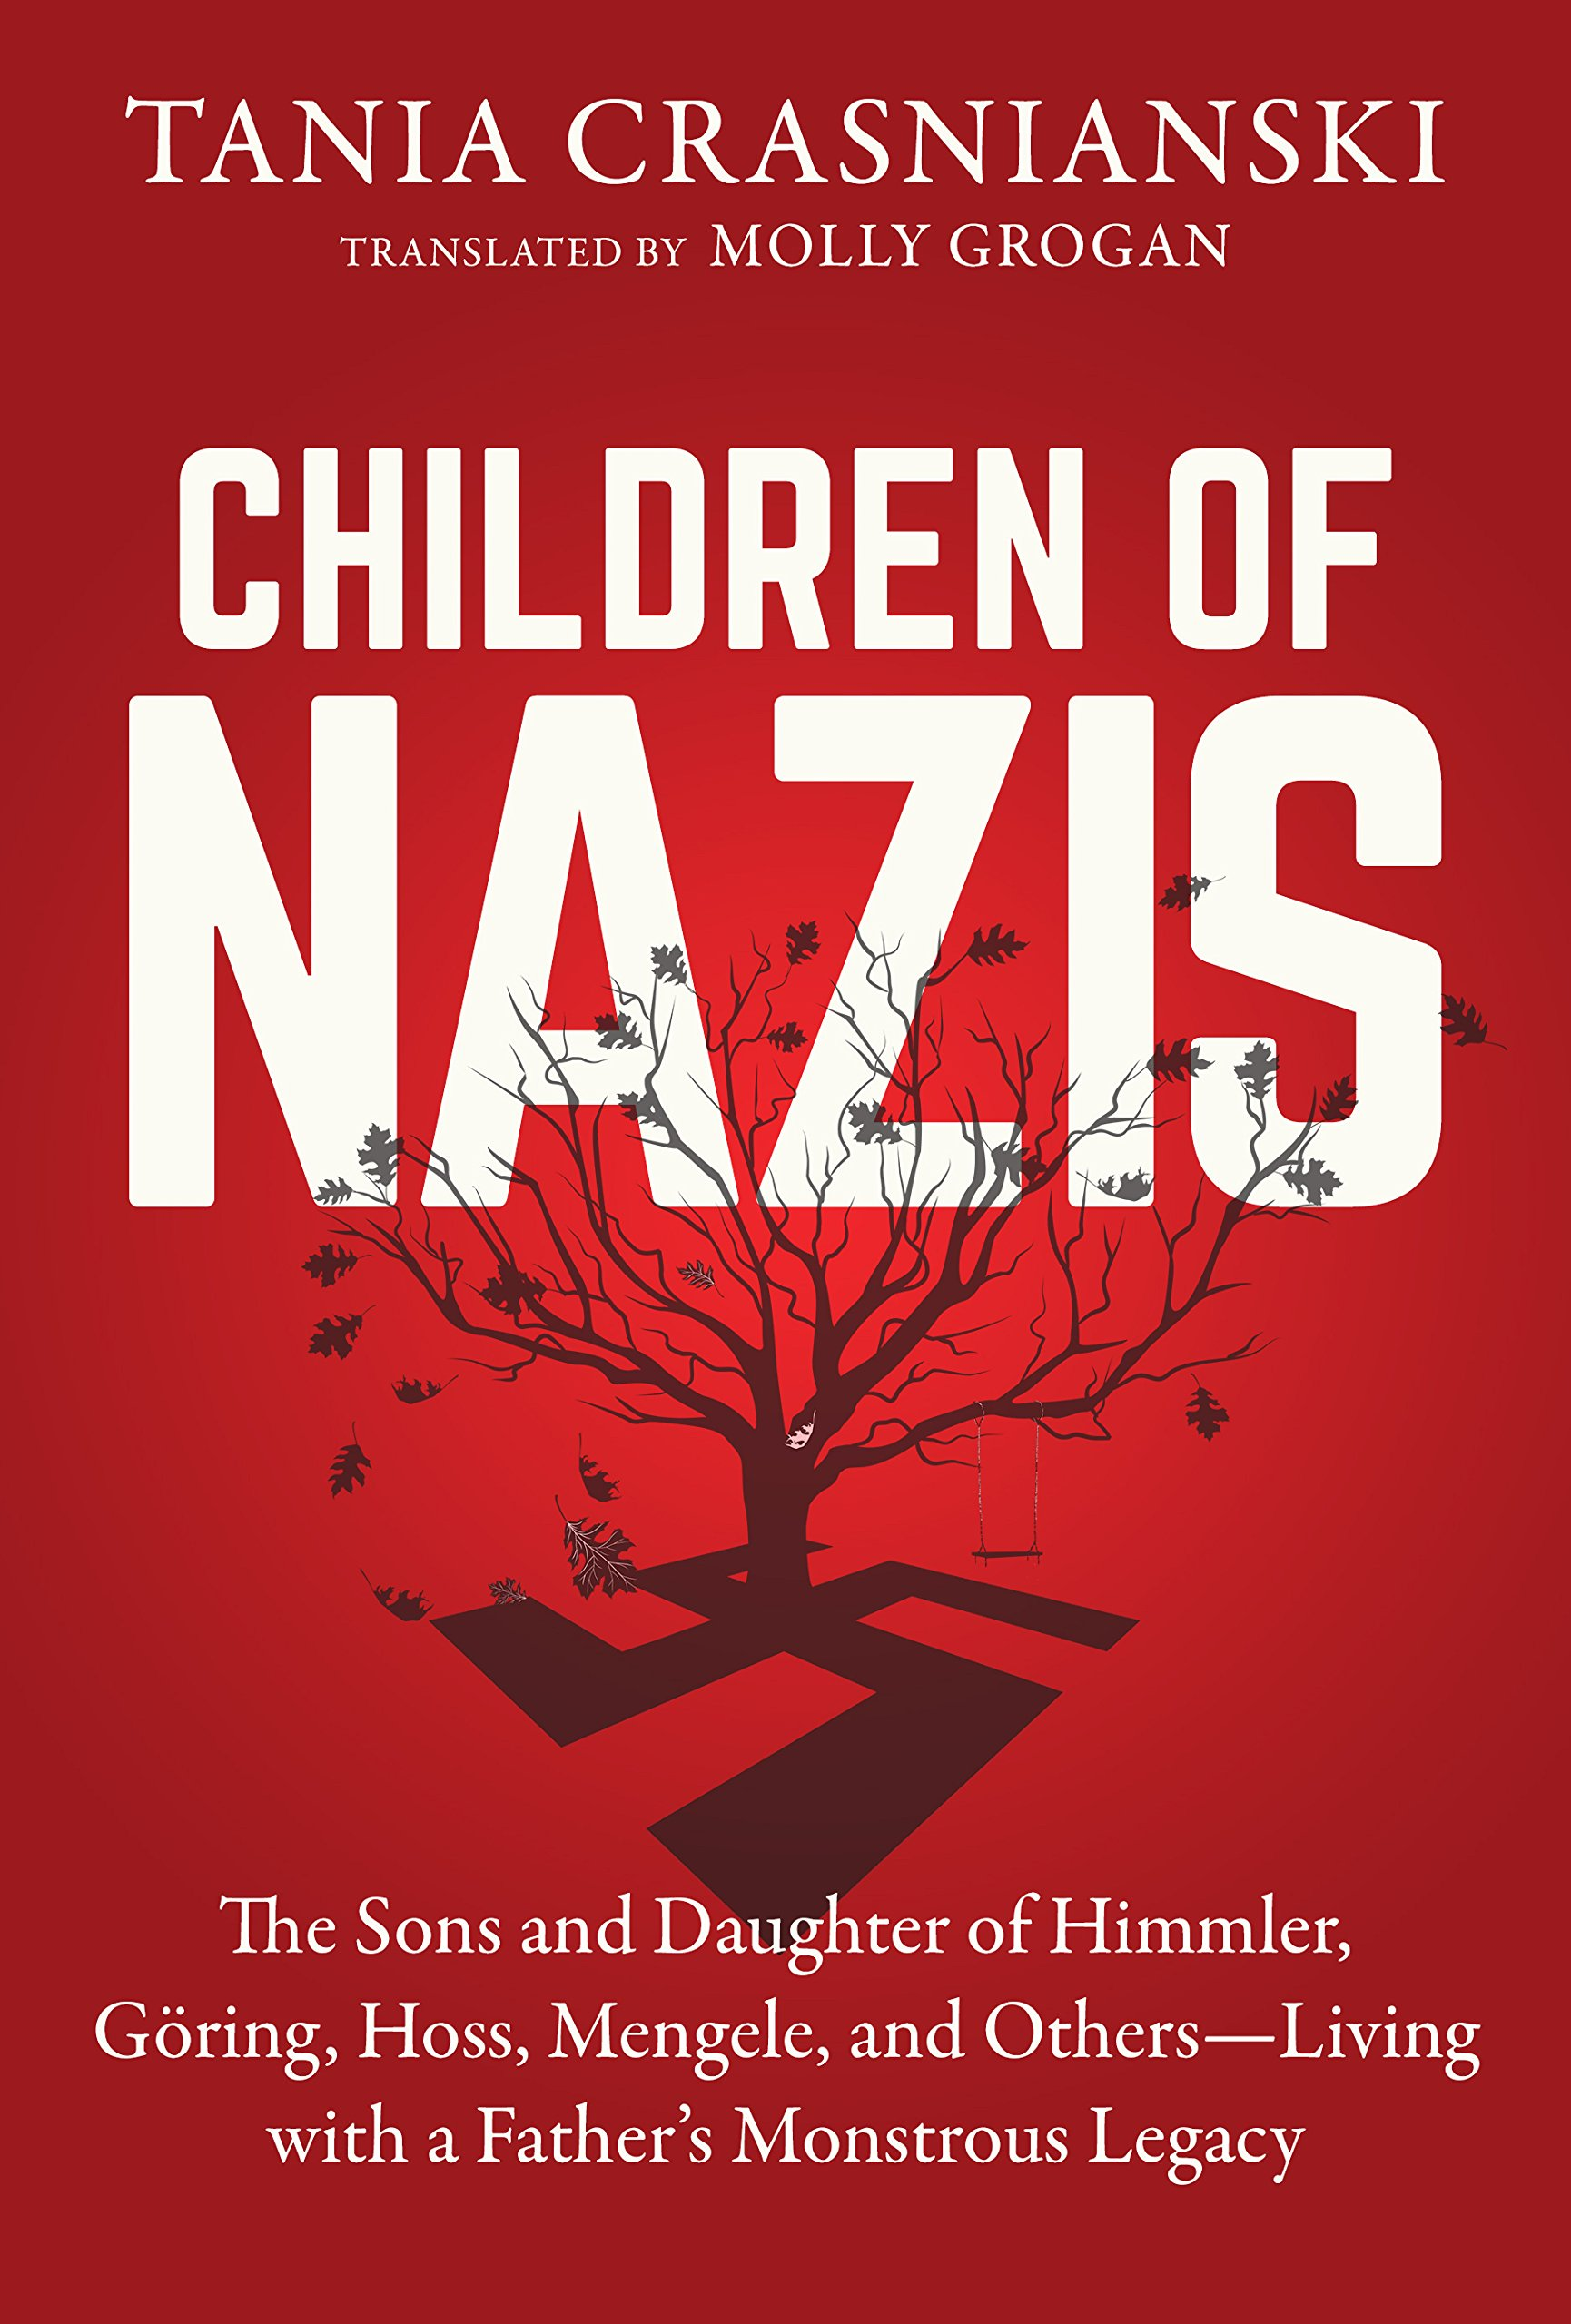 Children of Nazis: The Sons and Daughters of Himmler, Göring, Höss, Mengele, and Others― Living with a Father's Monstrous Legacy